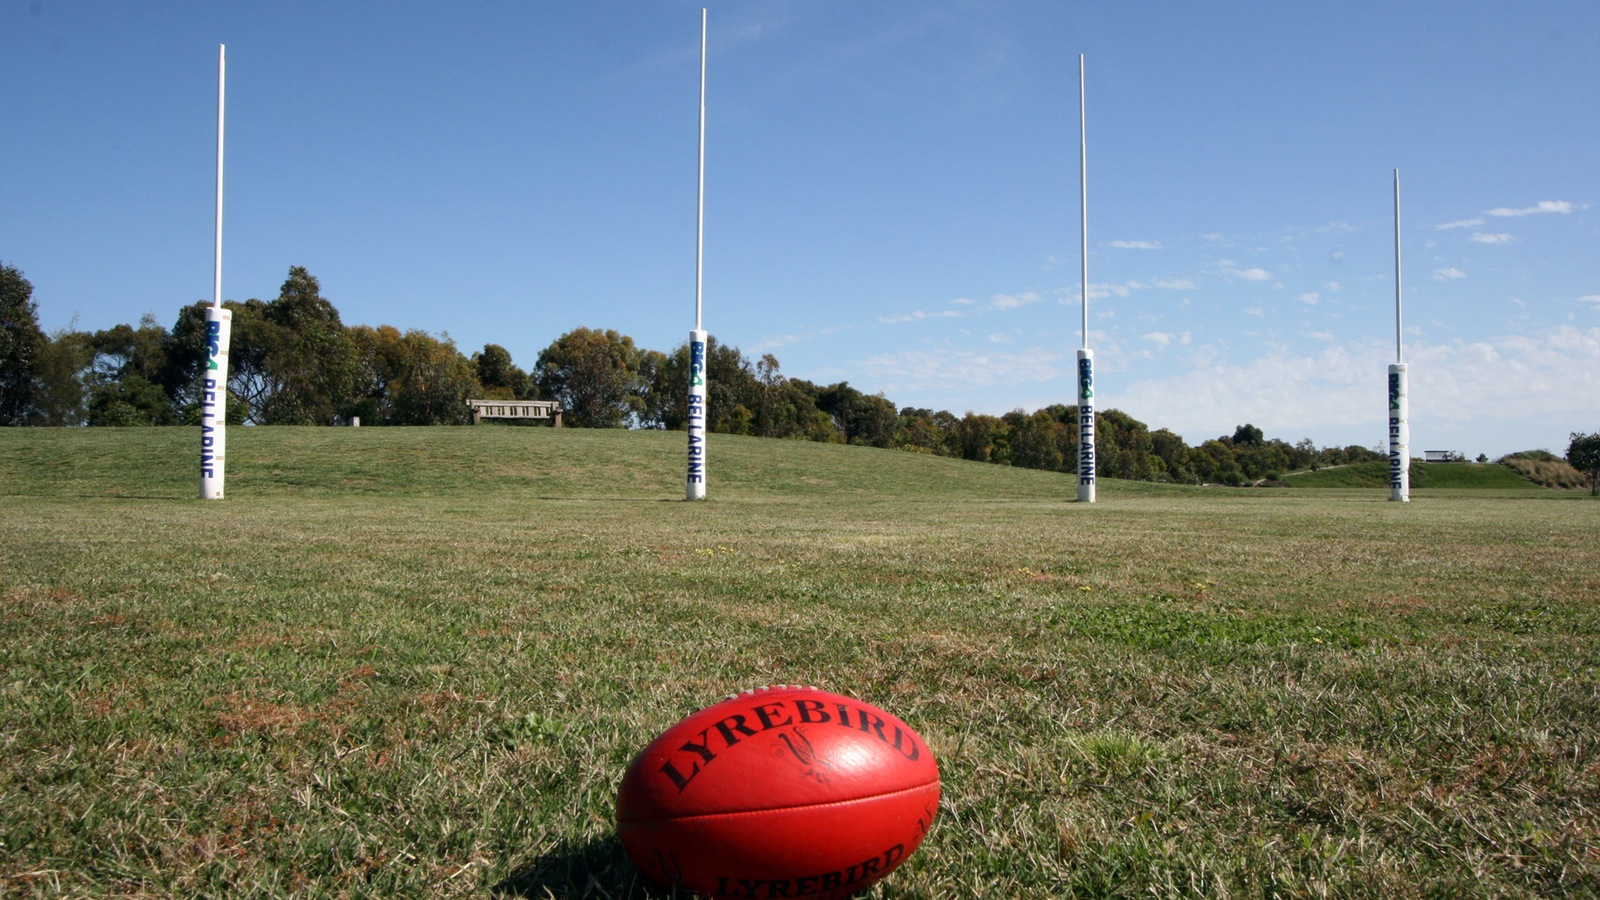 Full Sized Footy Goals